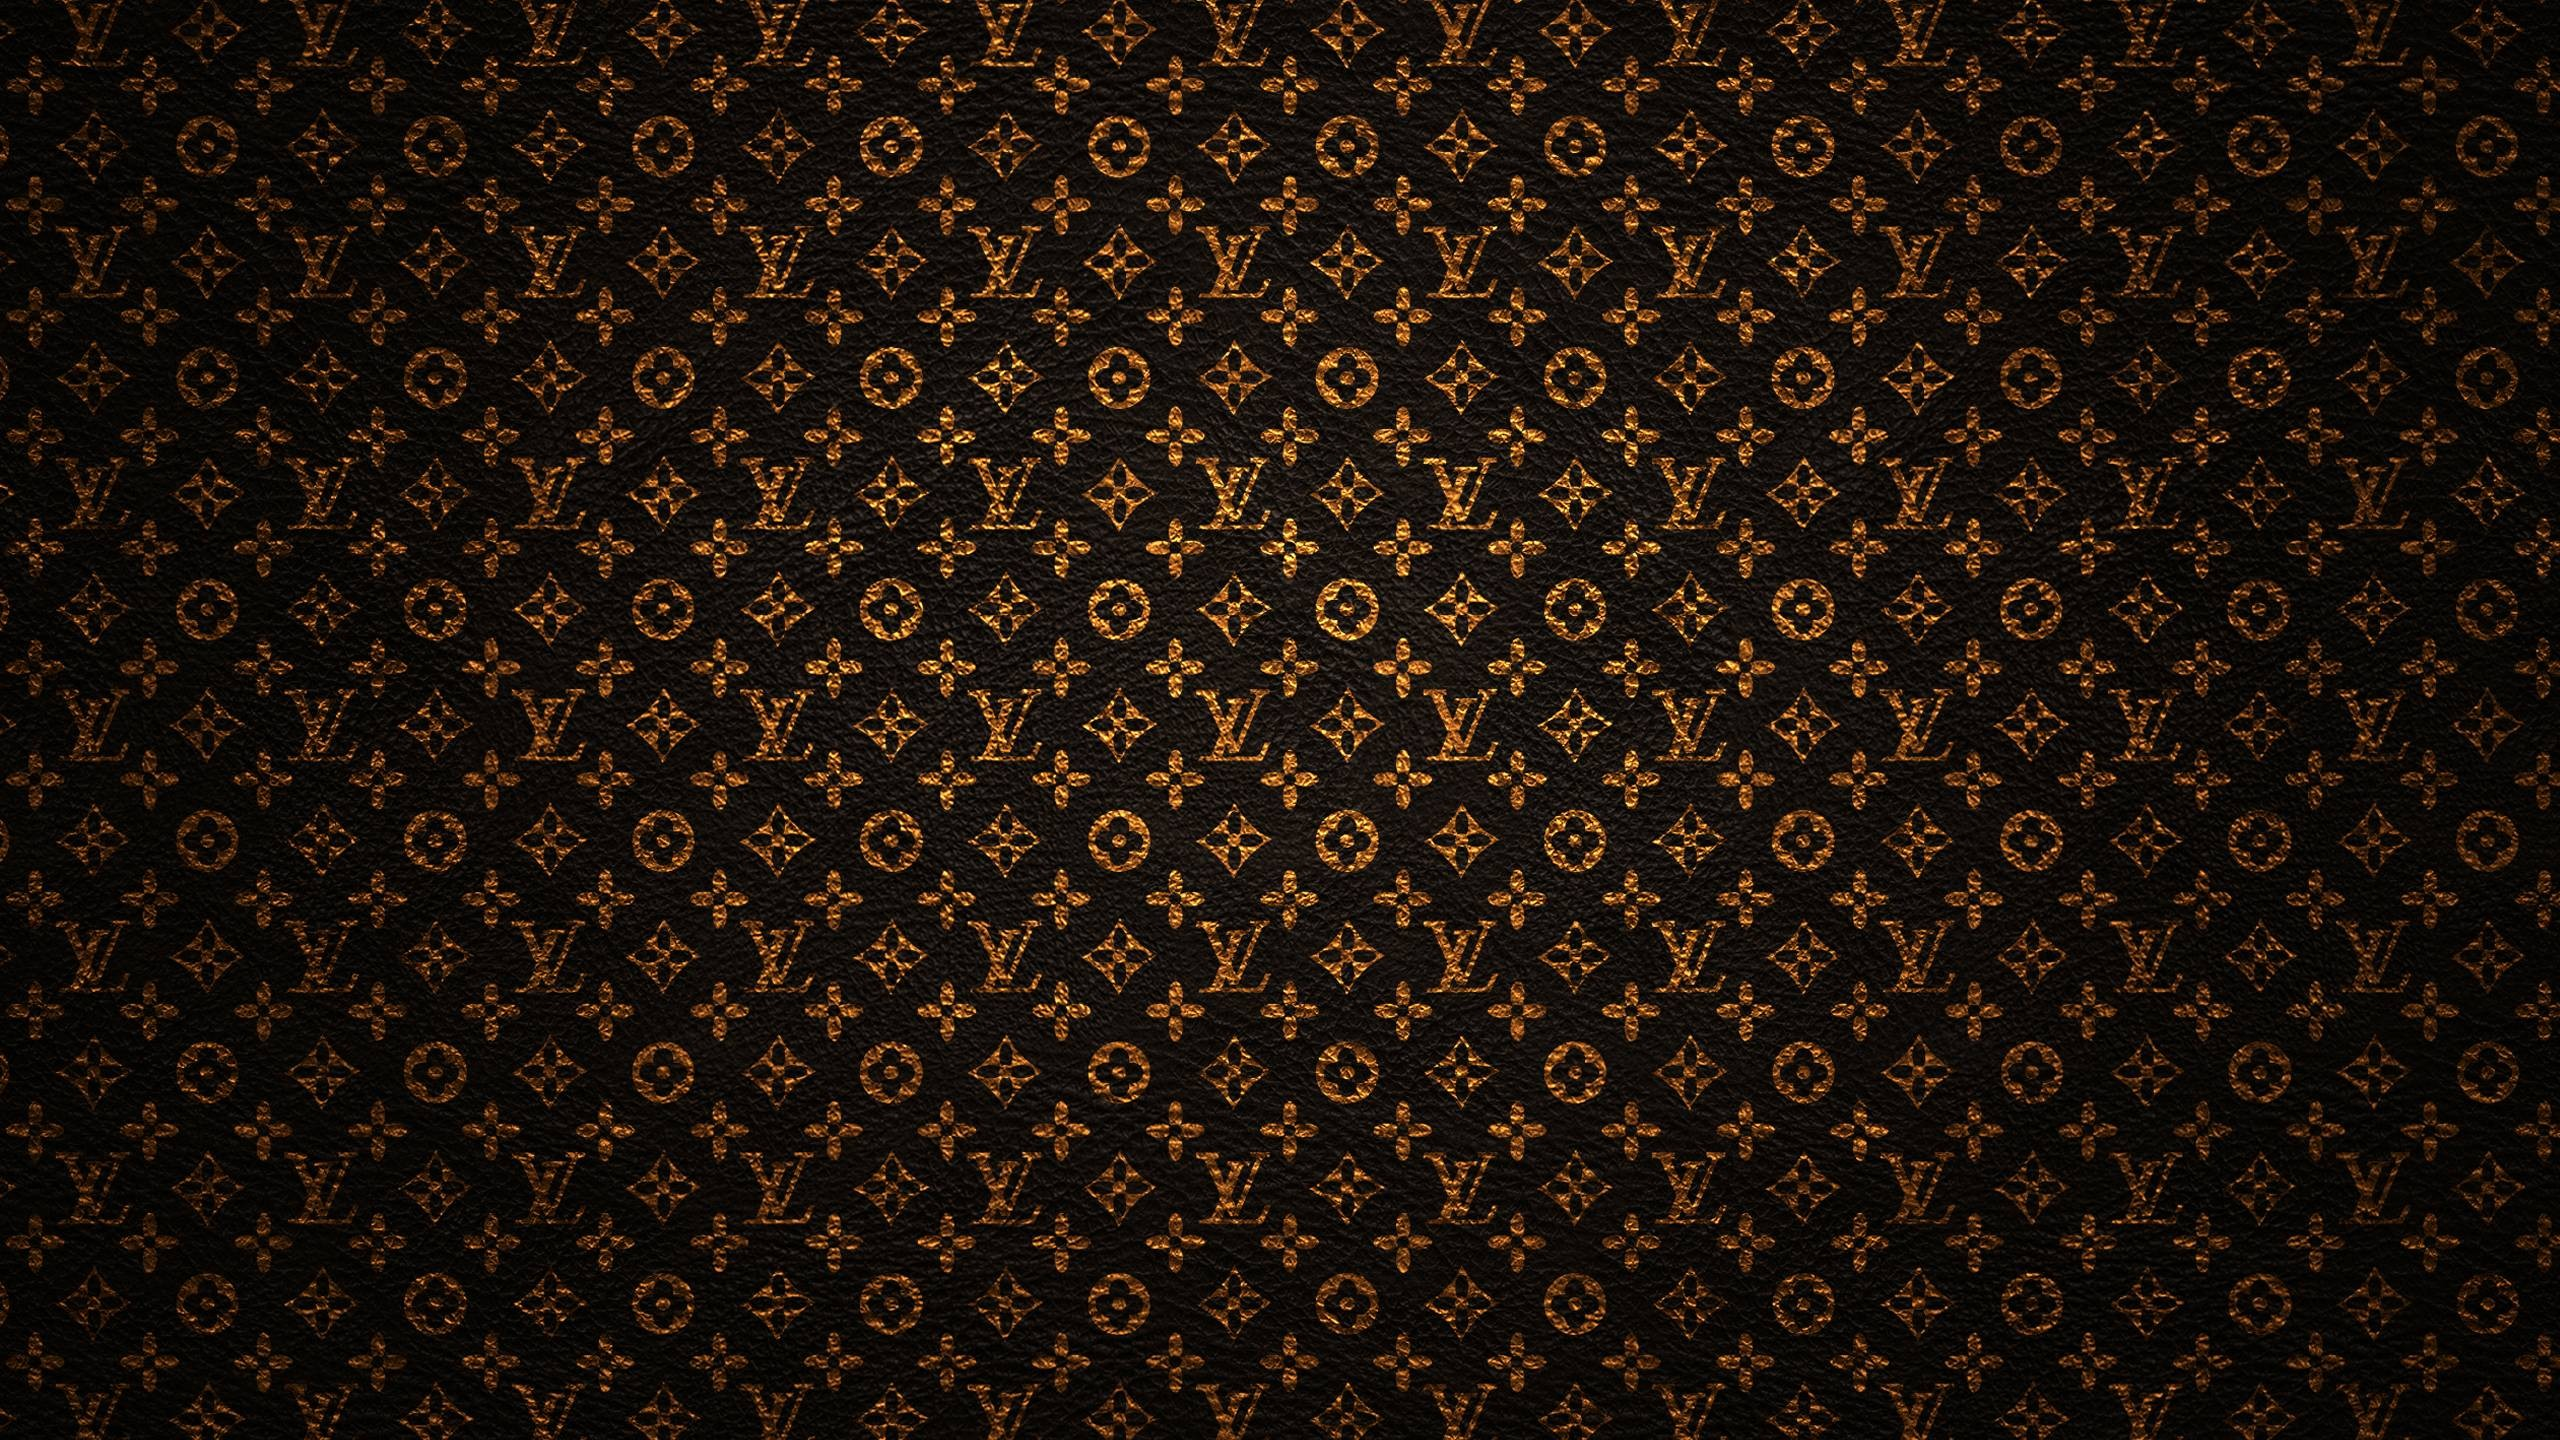 2560x1440 Iphone 6 Plus Wallpapers Gold Black Download